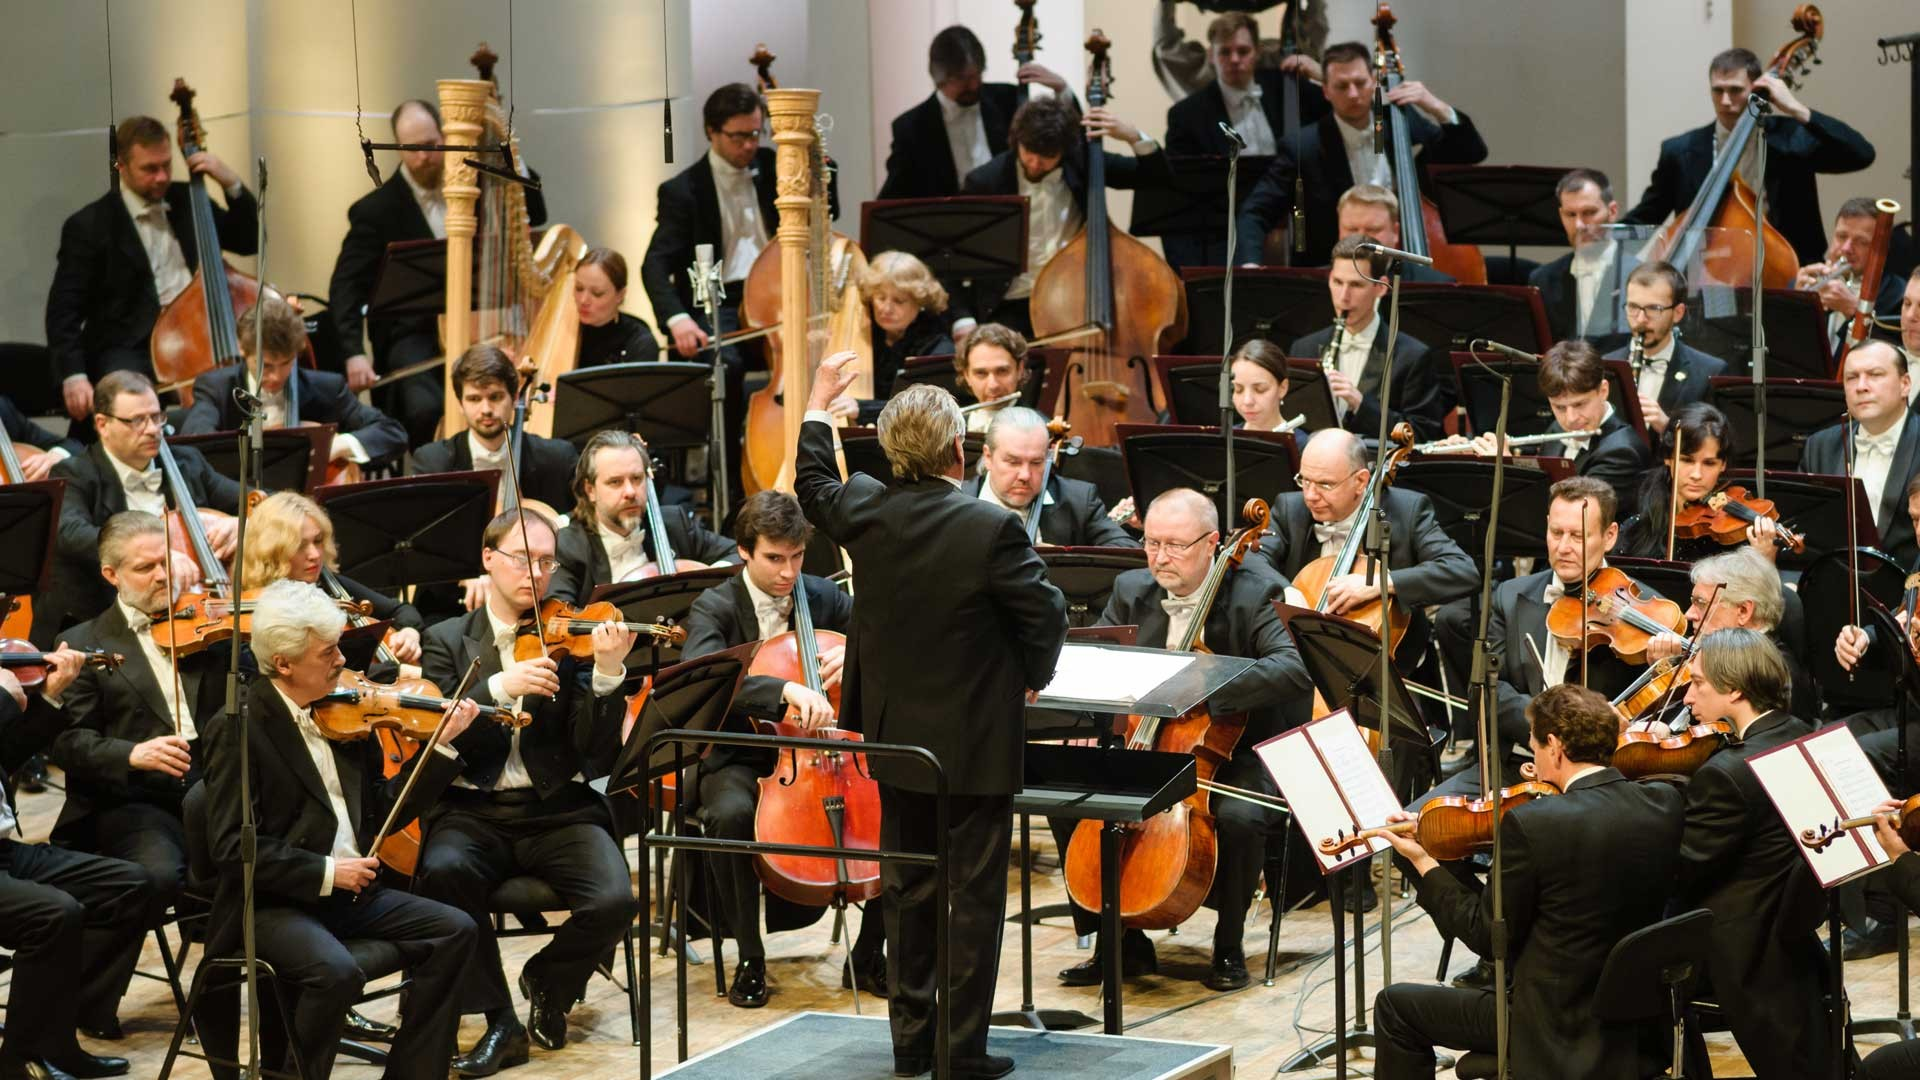 Grand Symphony Orchestra named after Peter Tchaikovsky